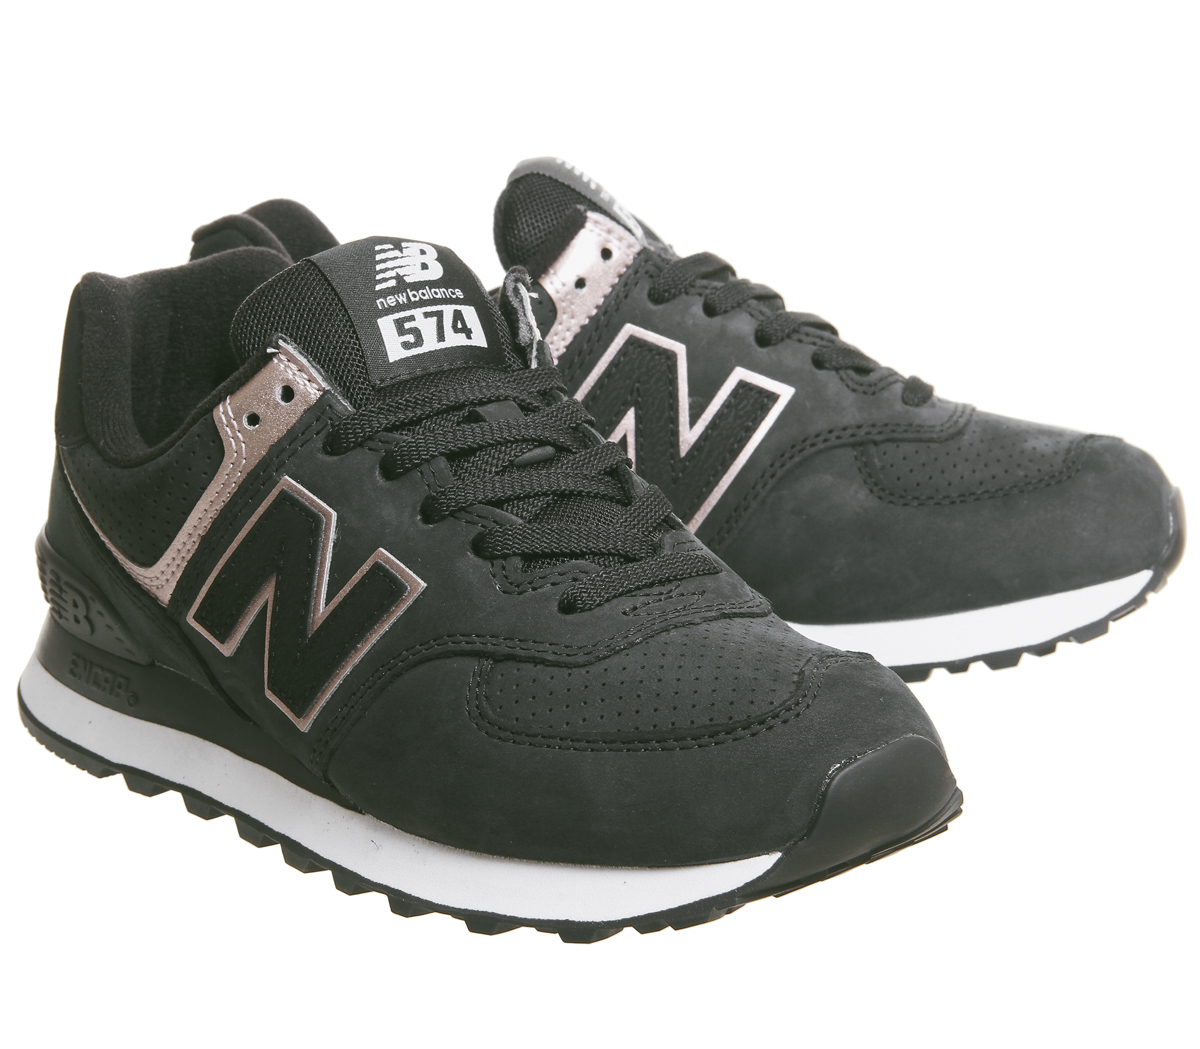 893457d7fb9 Womens New Balance 574 Trainers Black White Rose Gold Trainers Shoes ...